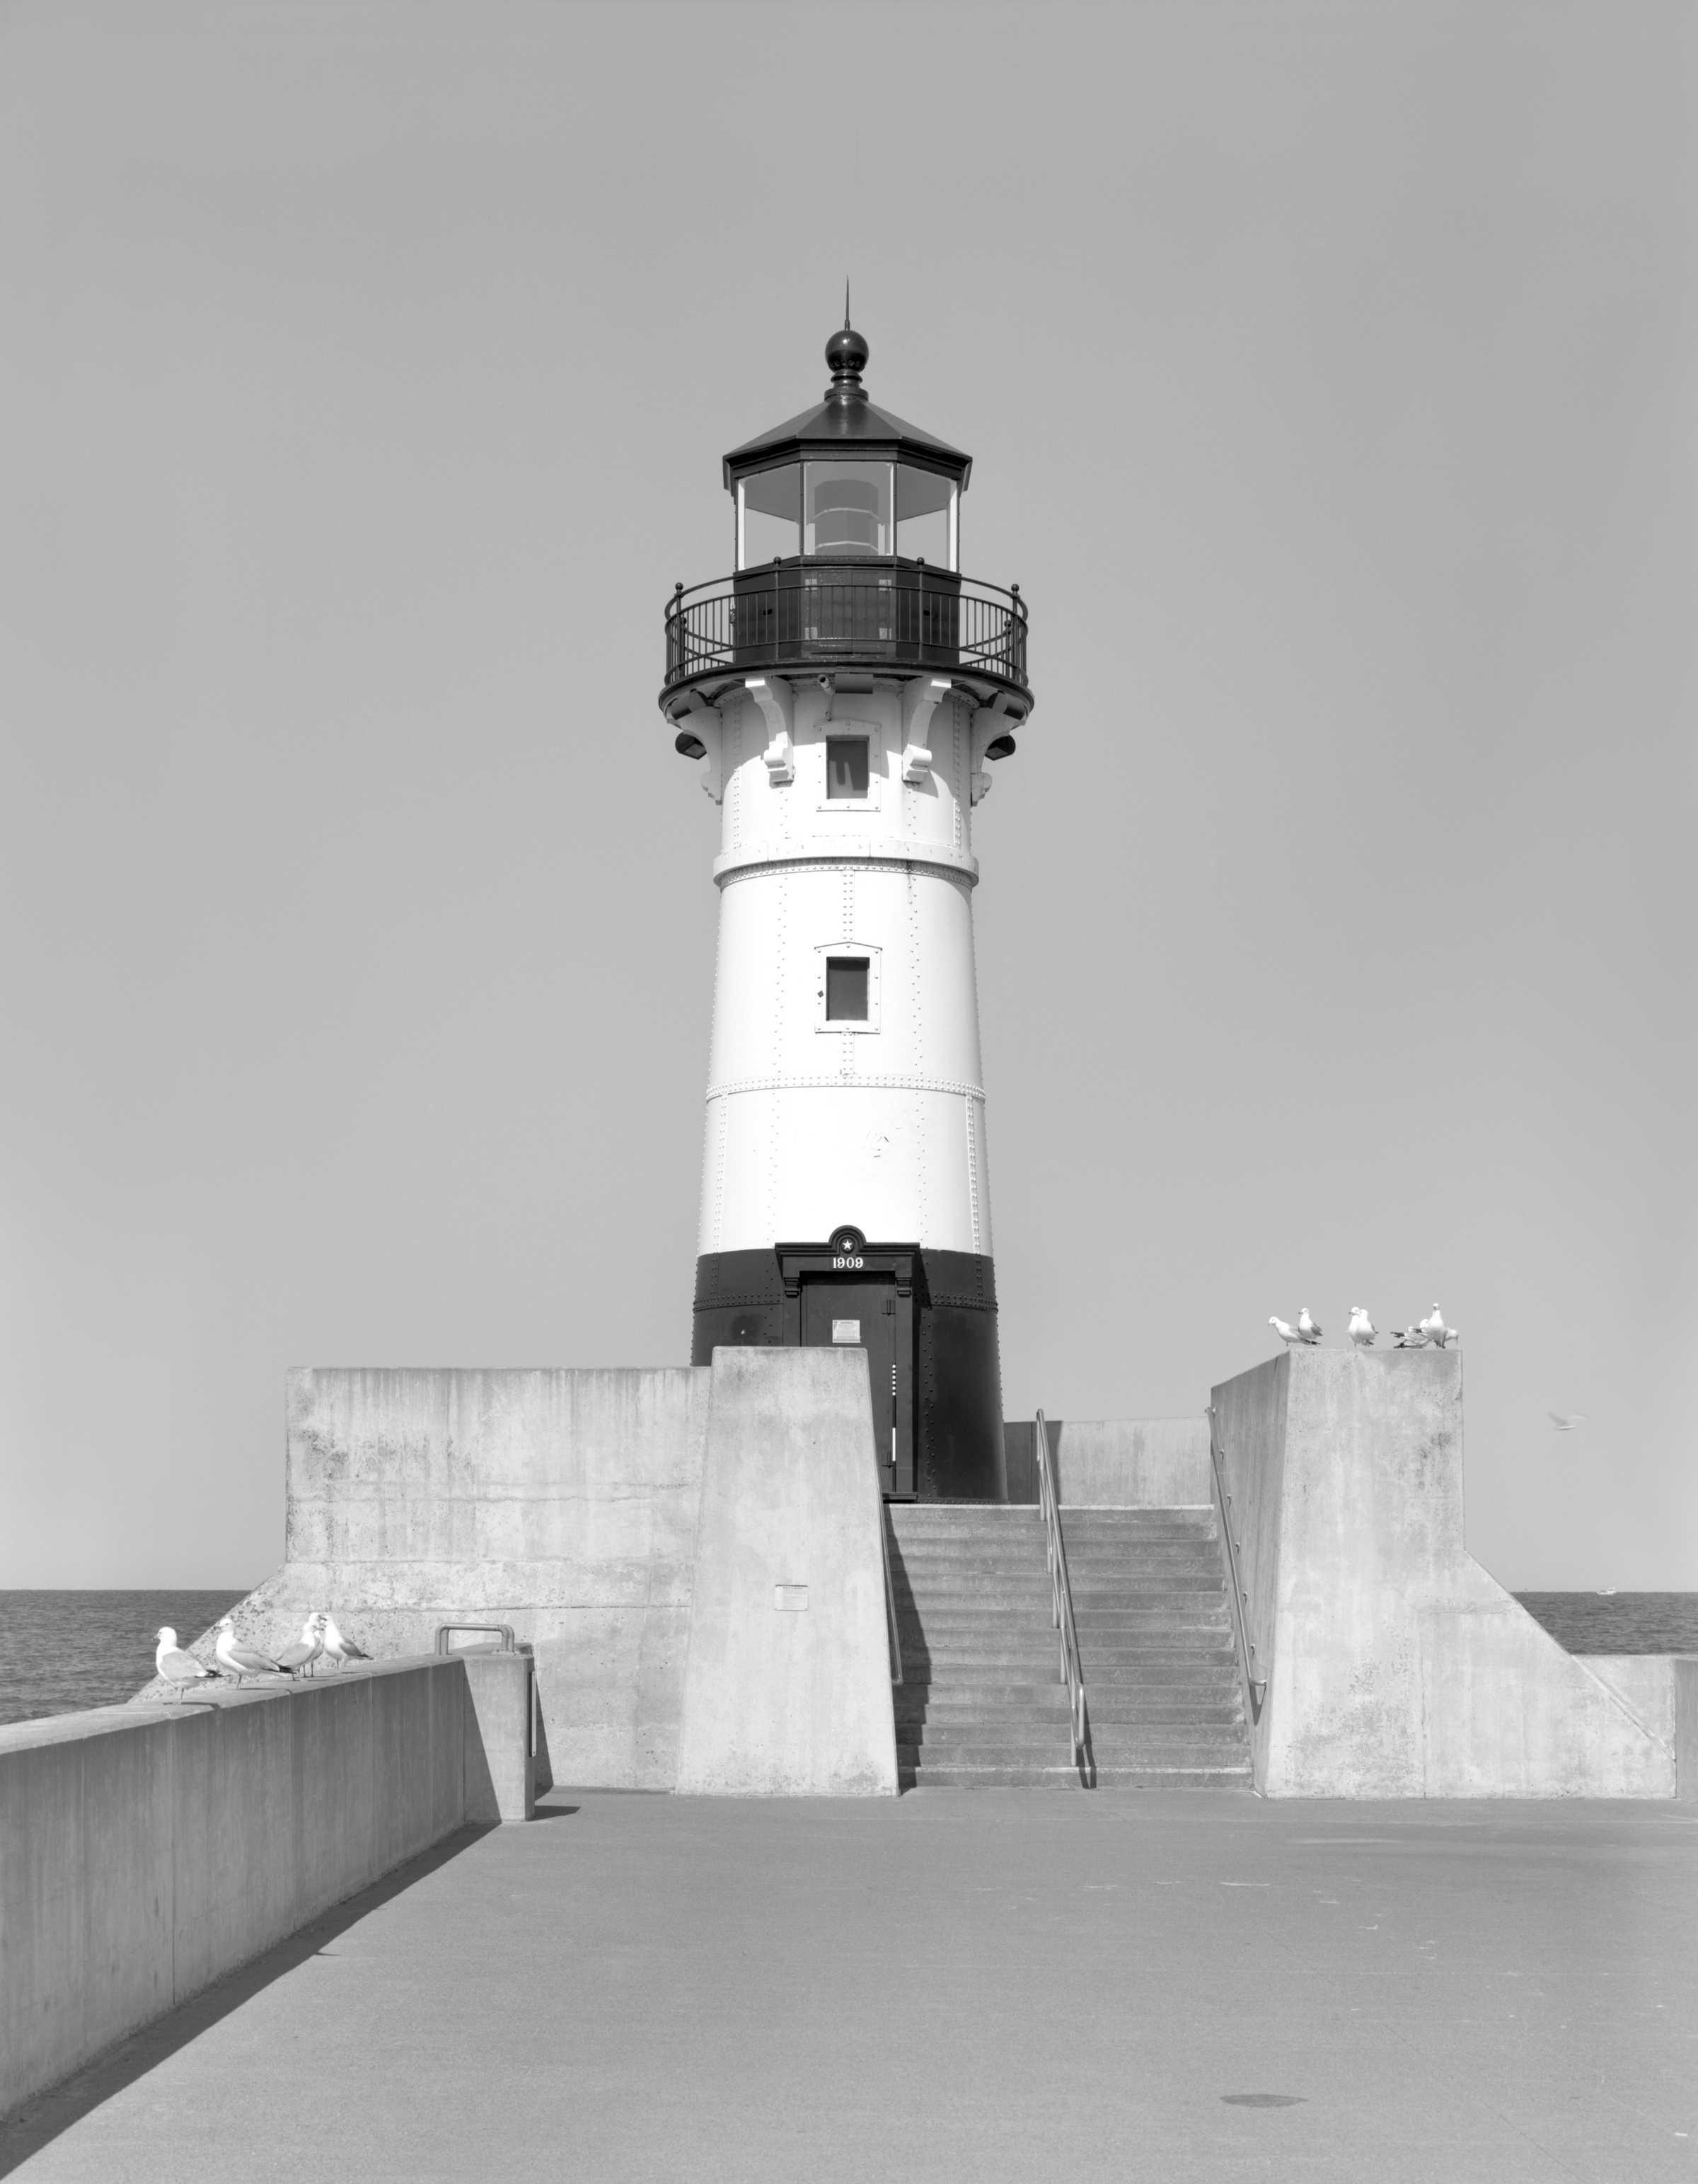 North Pier Light - MHPR SL-DUL-0348-03 (Please credit Daniel R. Pratt and the Minnesota Historic Property Record)